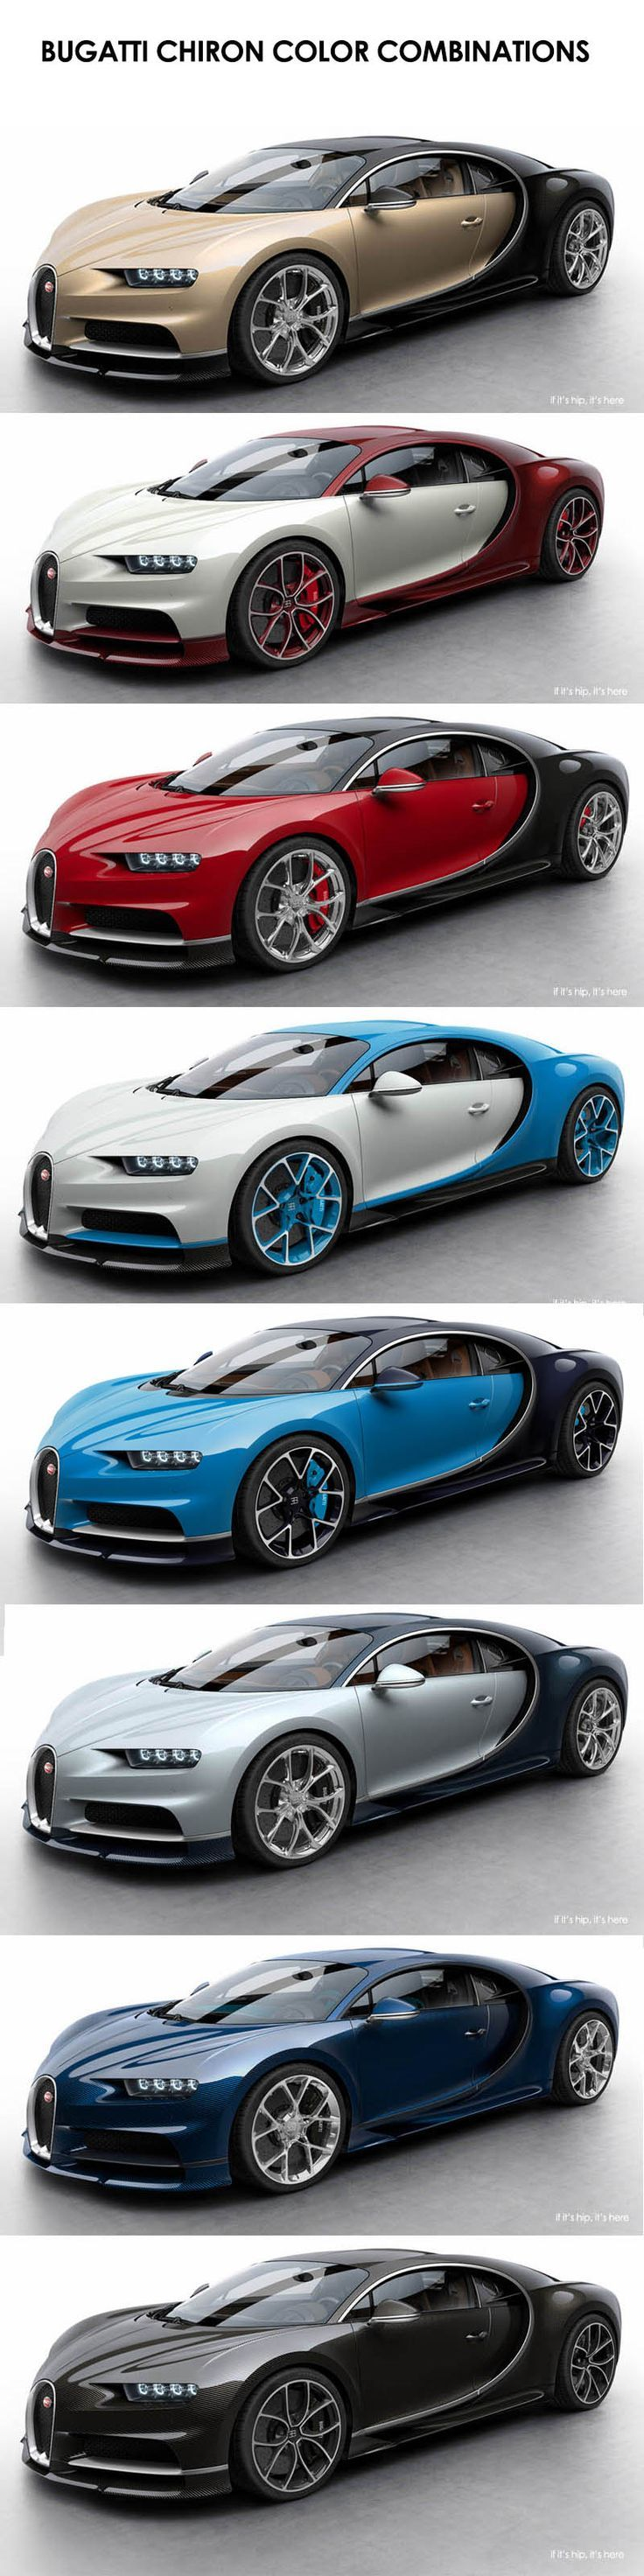 8944caeee27d5d7a6535bcd98b7580db--i-pick-colour-combinations Cool Bugatti Veyron Price In Uae 2015 Cars Trend